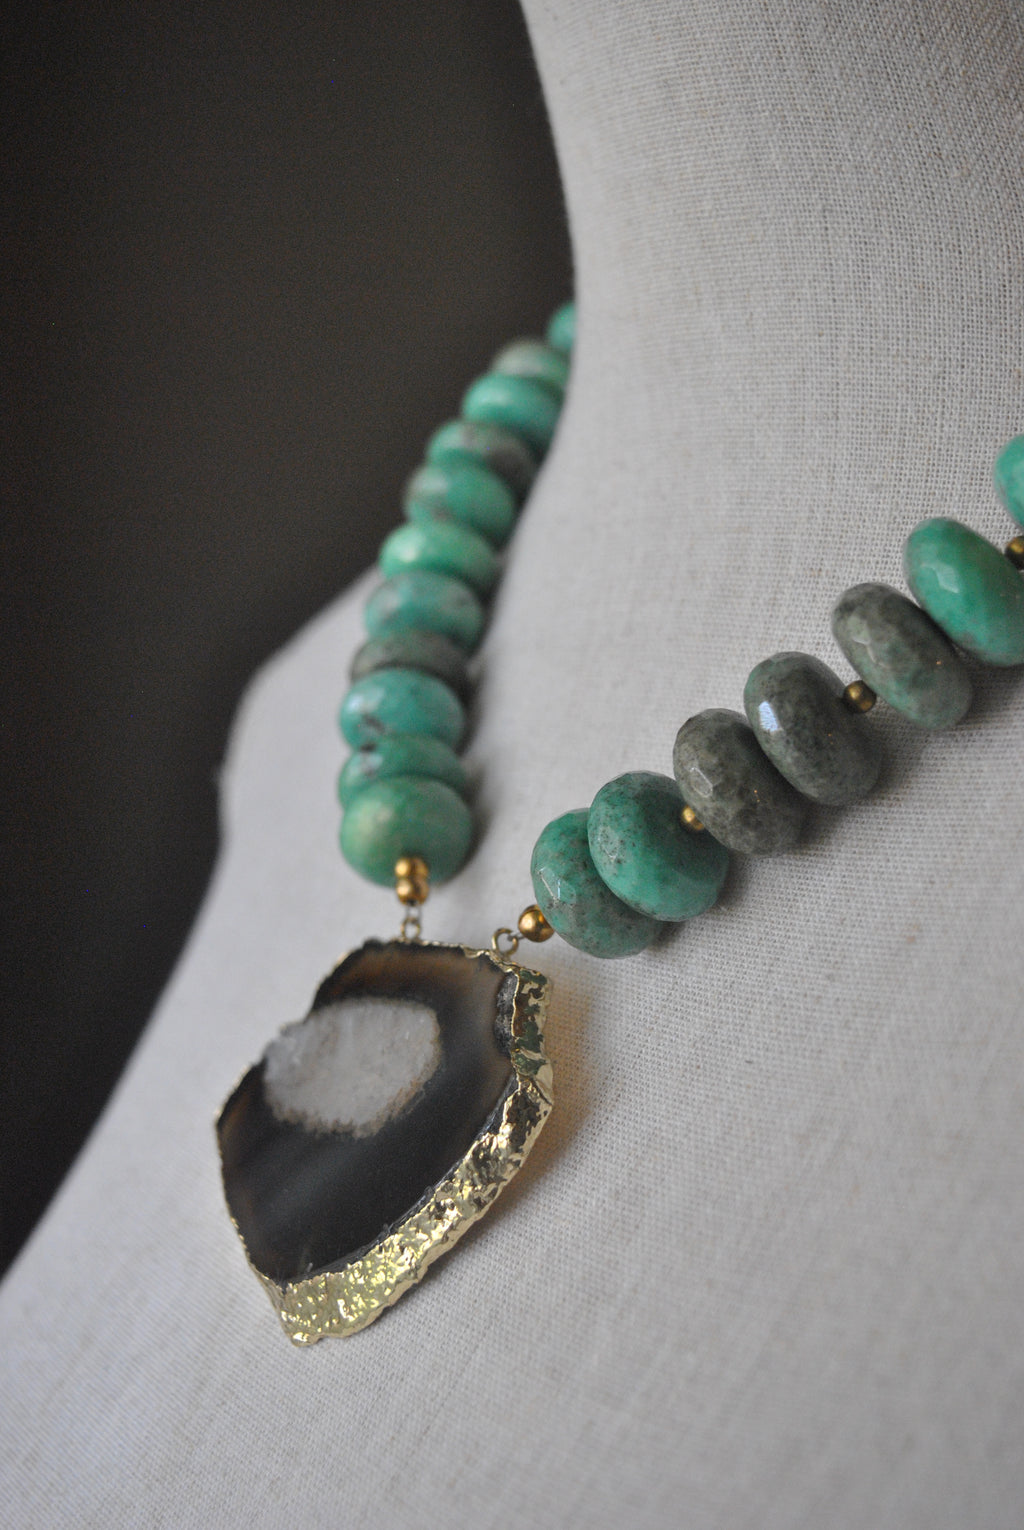 CHRYSOPRASE AND BLACK AGATE FREEFORM PENDANT STATEMENT NECKLACE